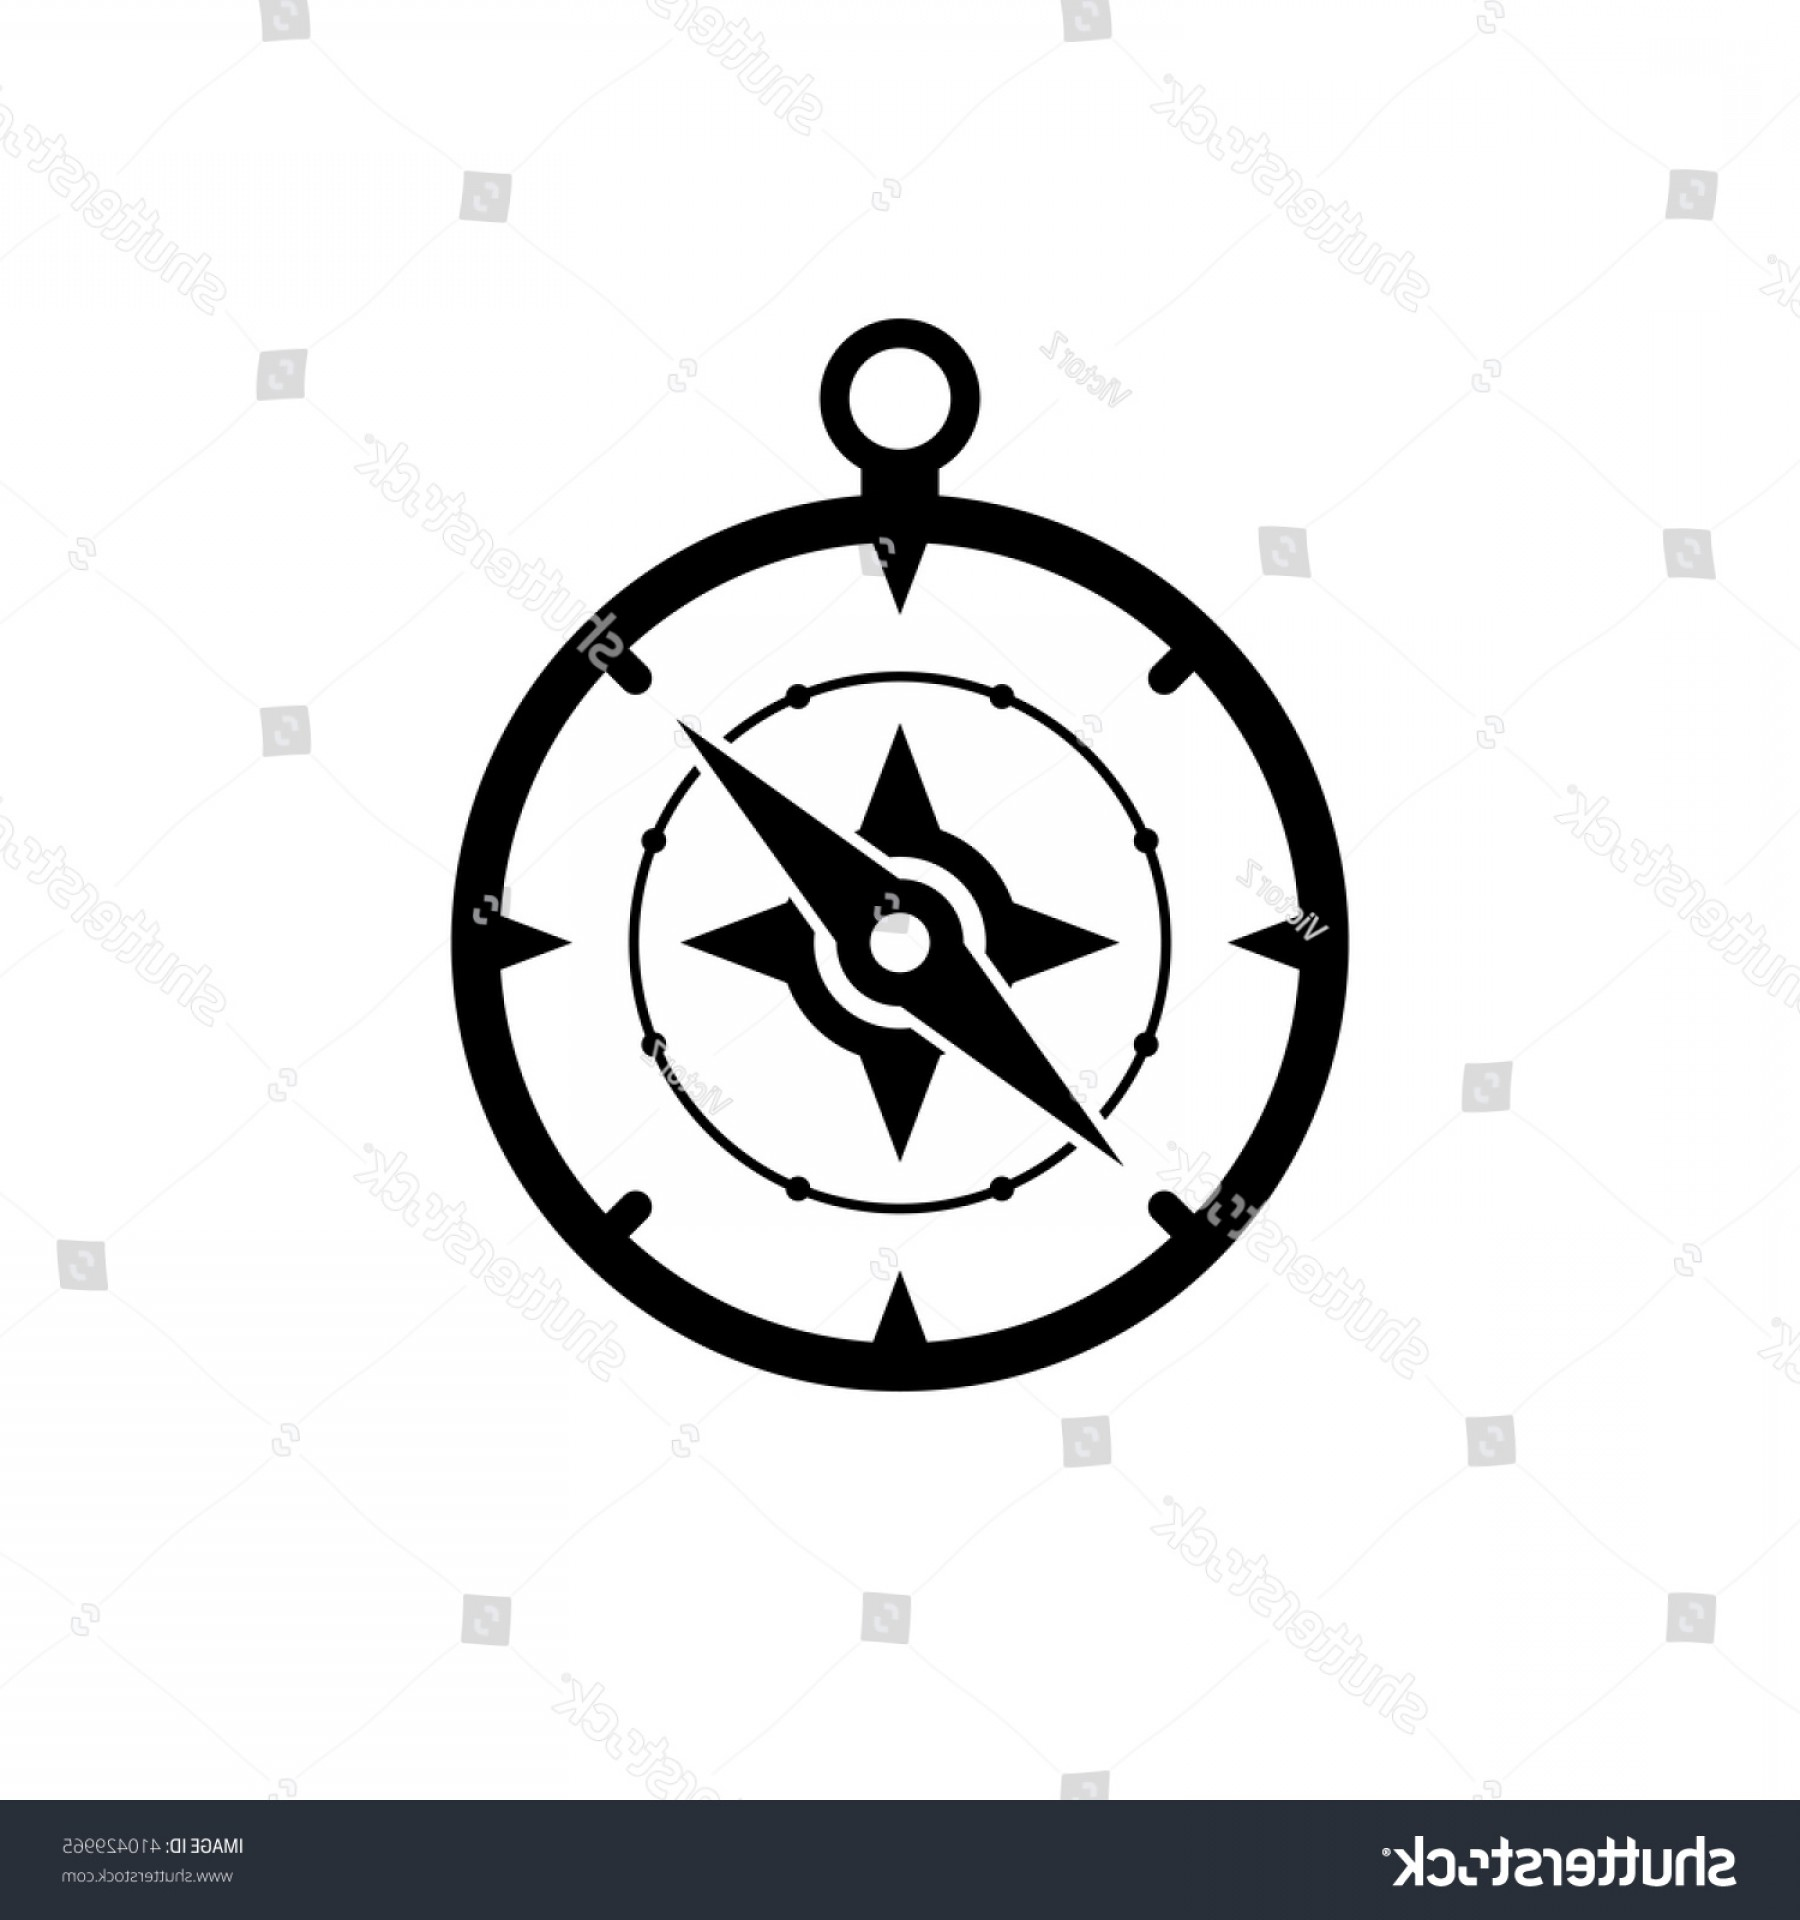 Simple Compass Vector Black And White: Compass Icon Black Isolated On White